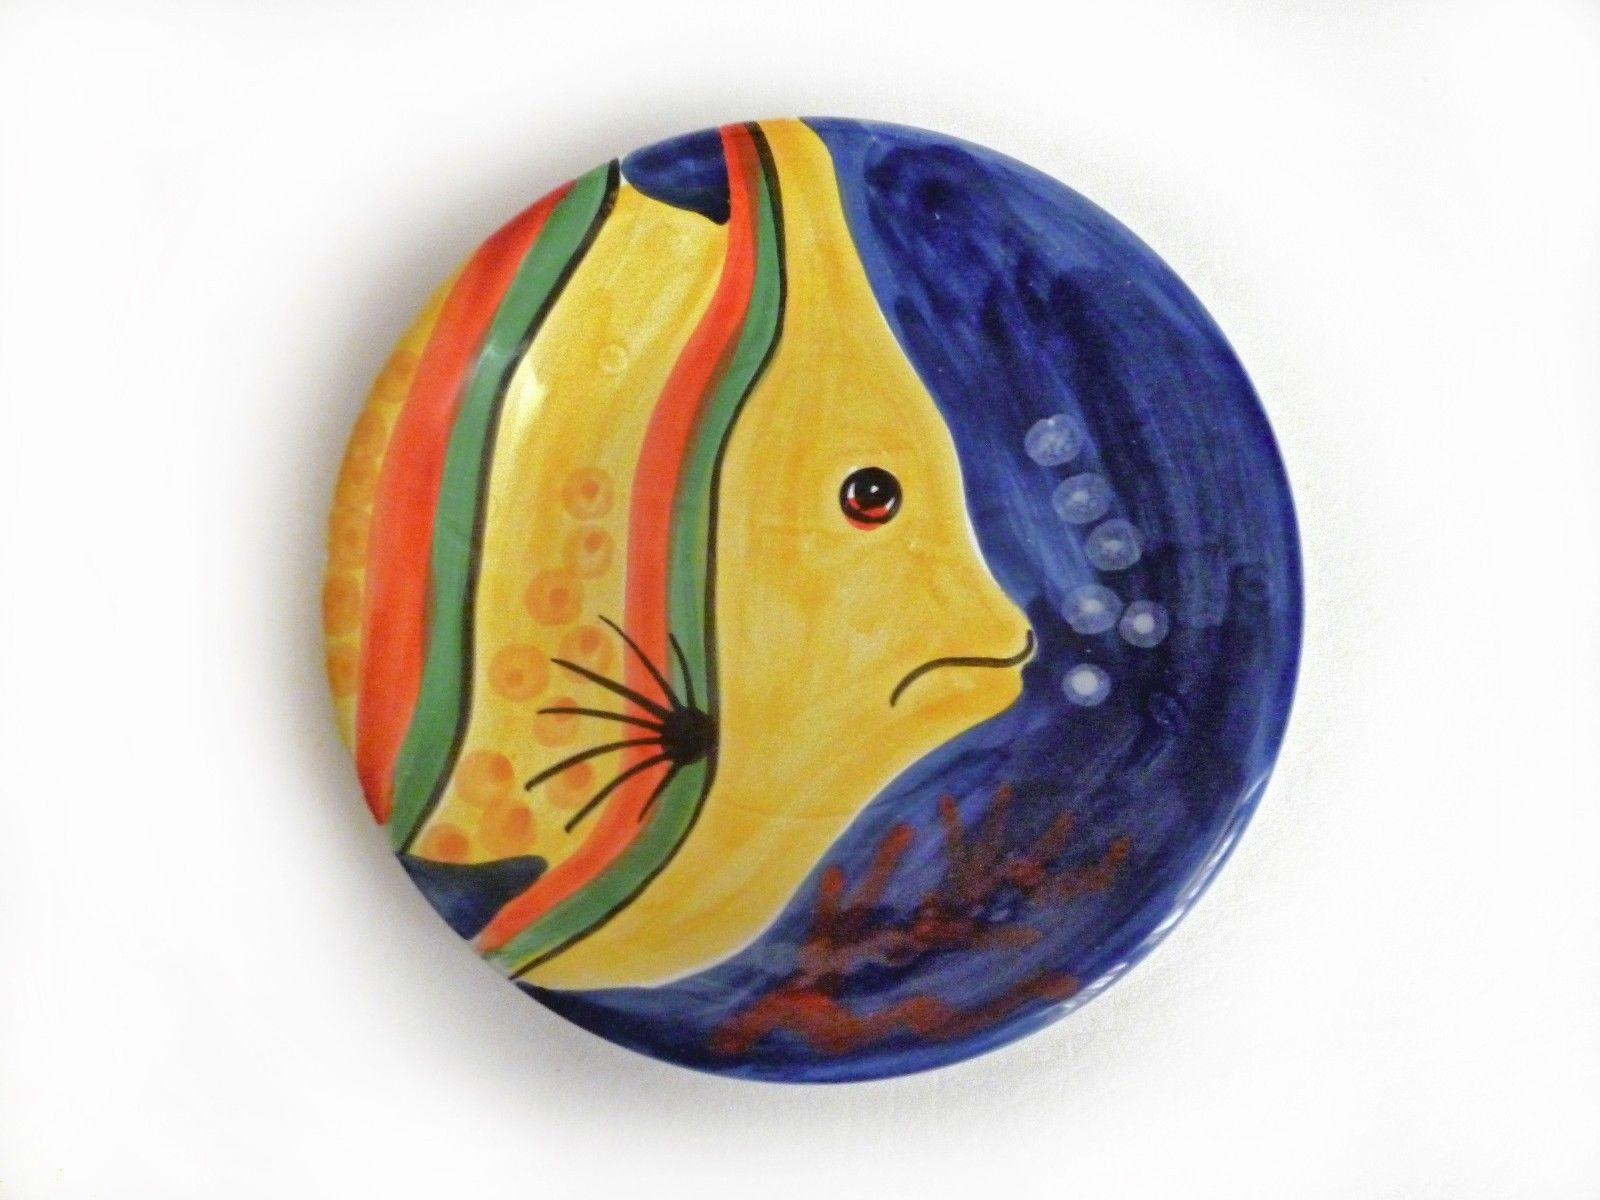 Decorative Plate Hand Painted in Italy - Tropical Fish Colorful  sc 1 st  Pinterest & Decorative Plate Hand Painted in Italy - Tropical Fish Colorful ...